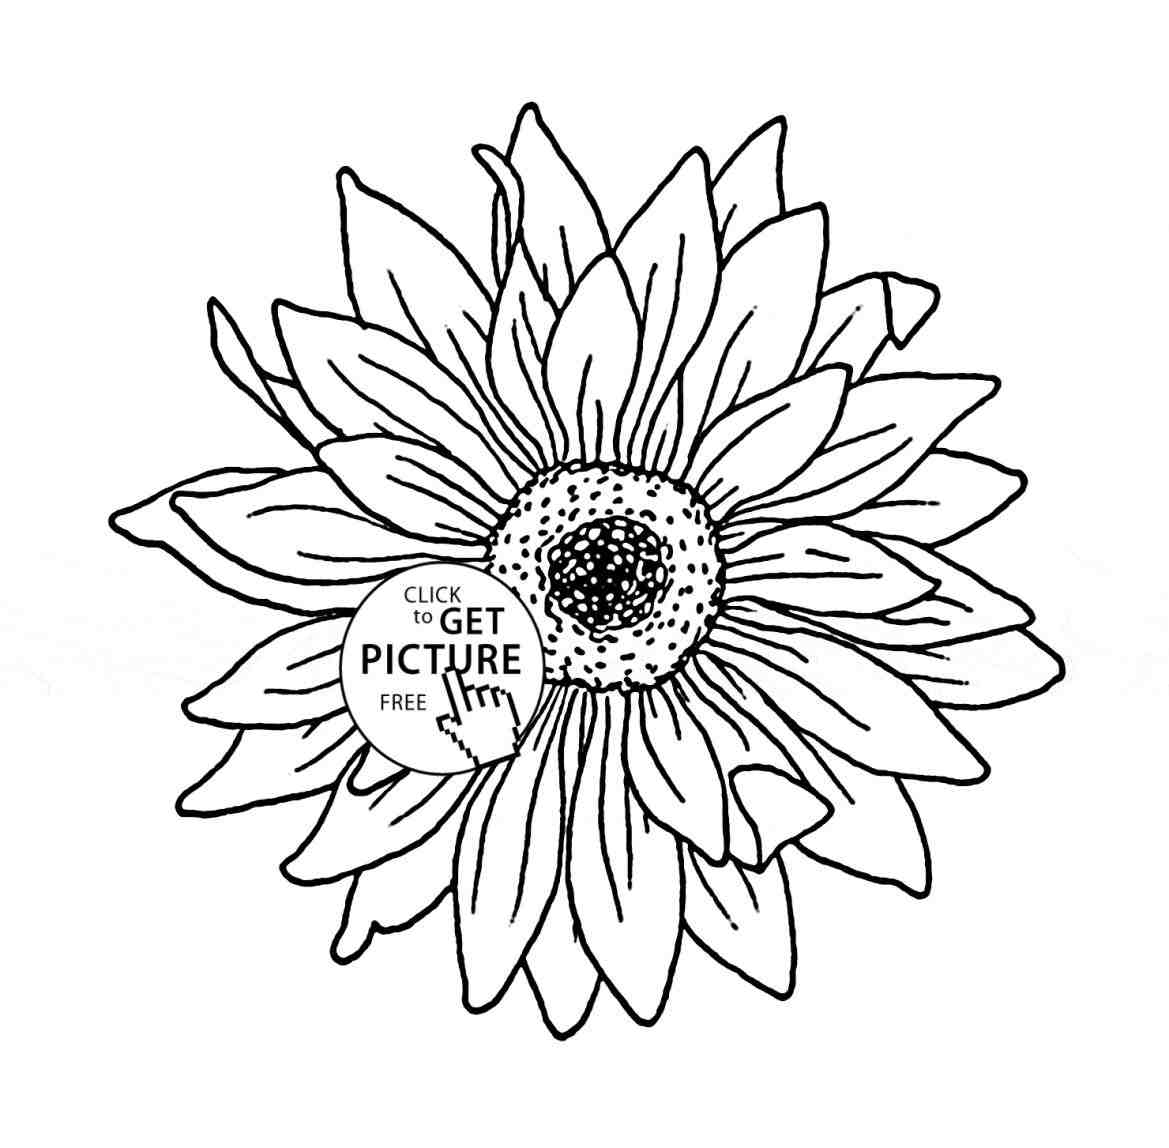 Sunflower Outline Drawing At Getdrawings